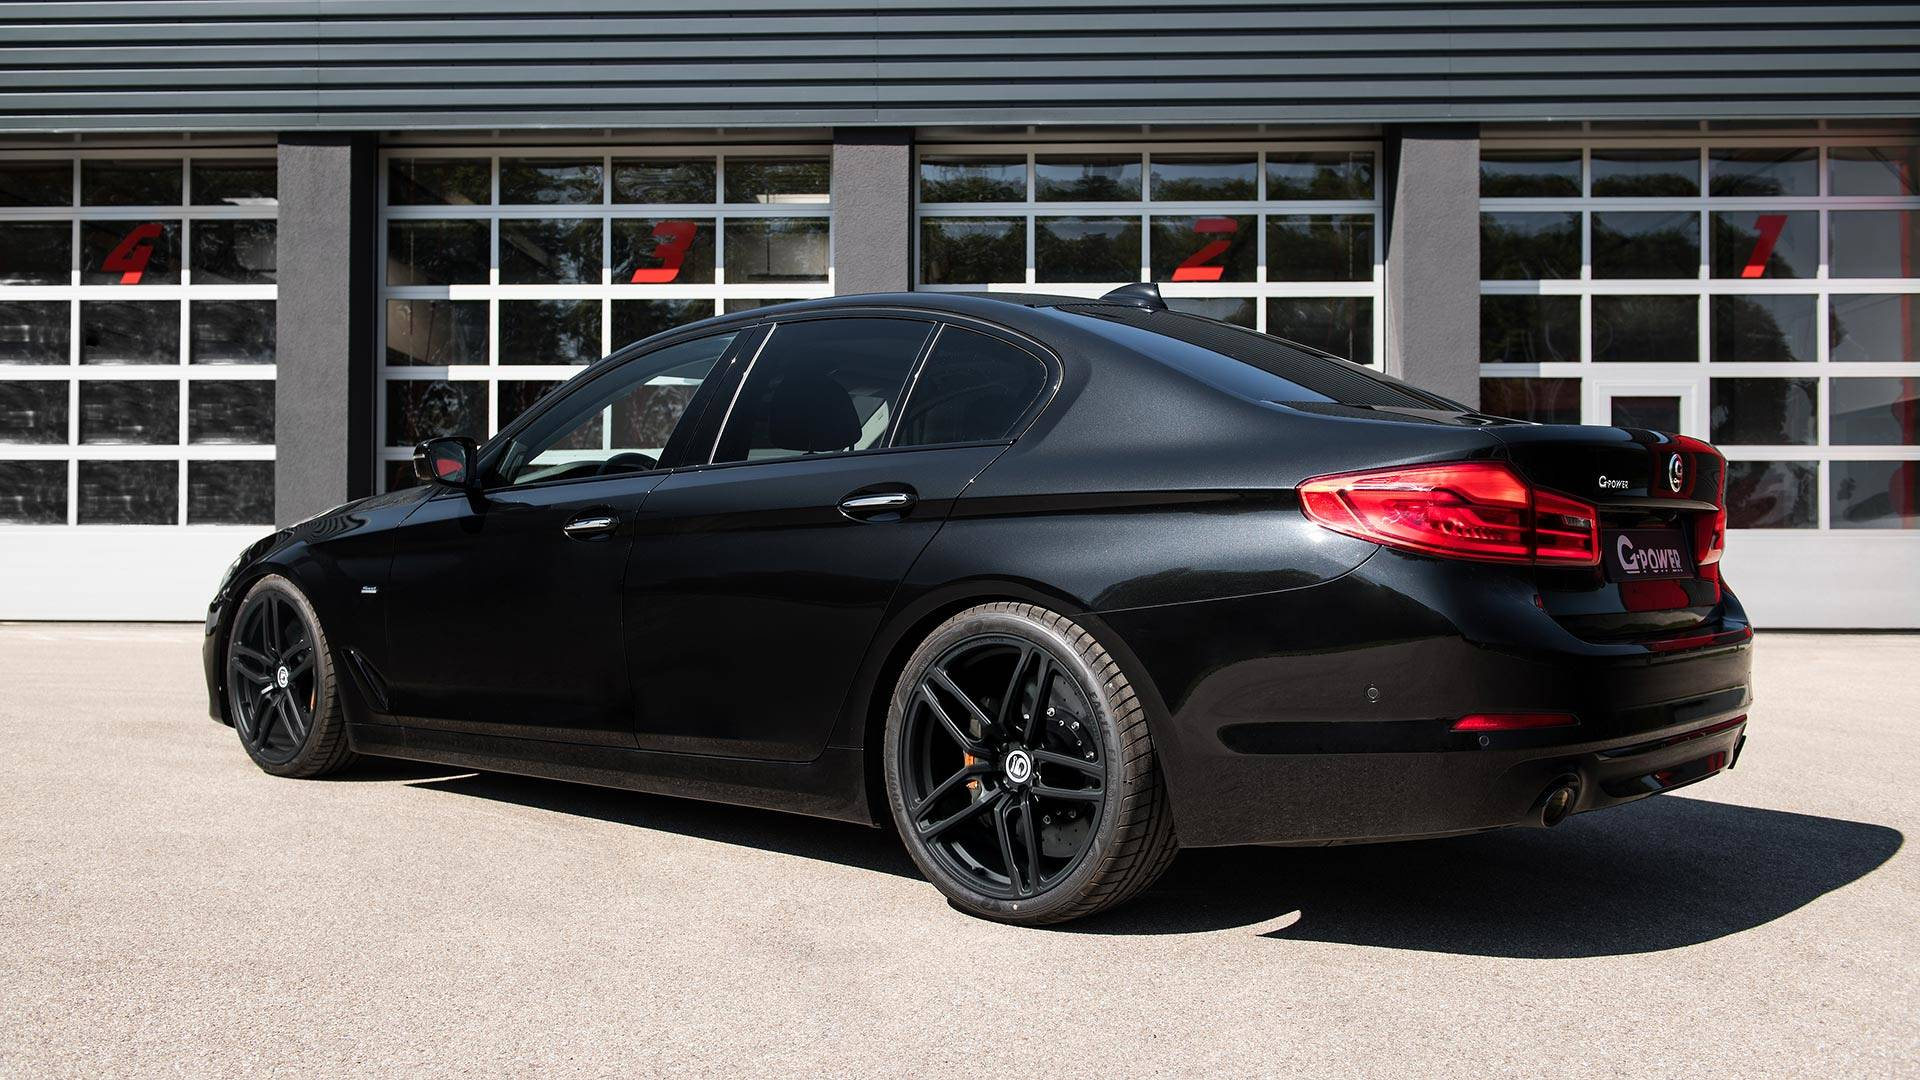 black bmw m550d xdrive by g power bmw car tuning. Black Bedroom Furniture Sets. Home Design Ideas